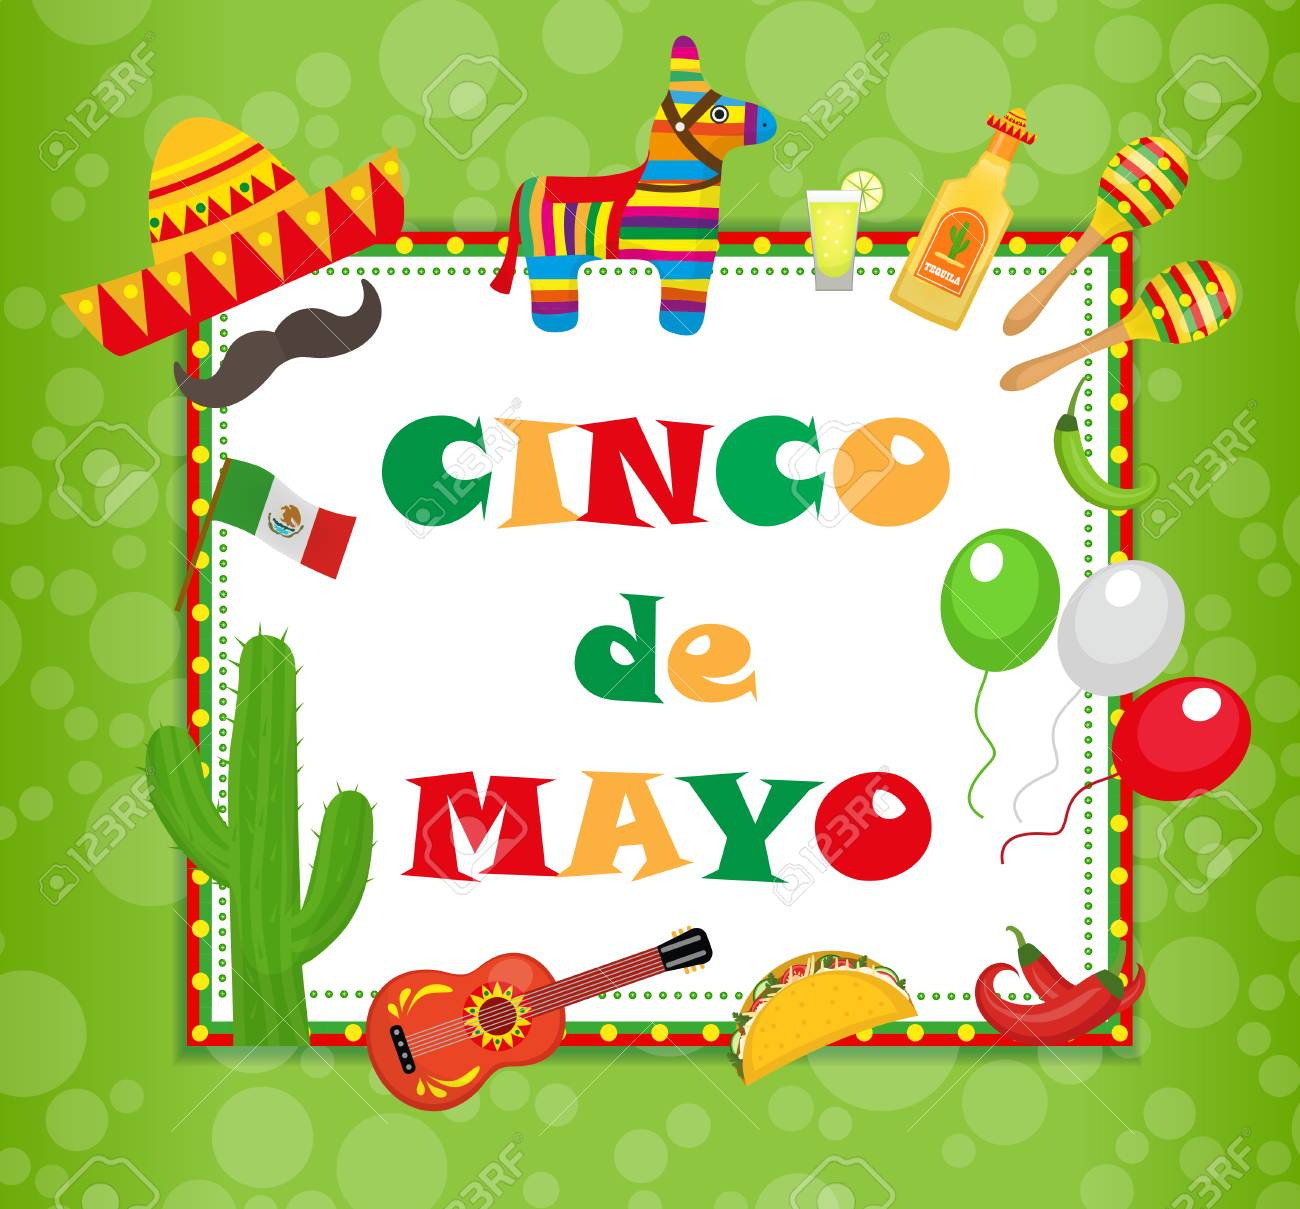 Cinco de mayo greeting card template for flyer poster invitation cinco de mayo greeting card template for flyer poster invitation stock vector m4hsunfo